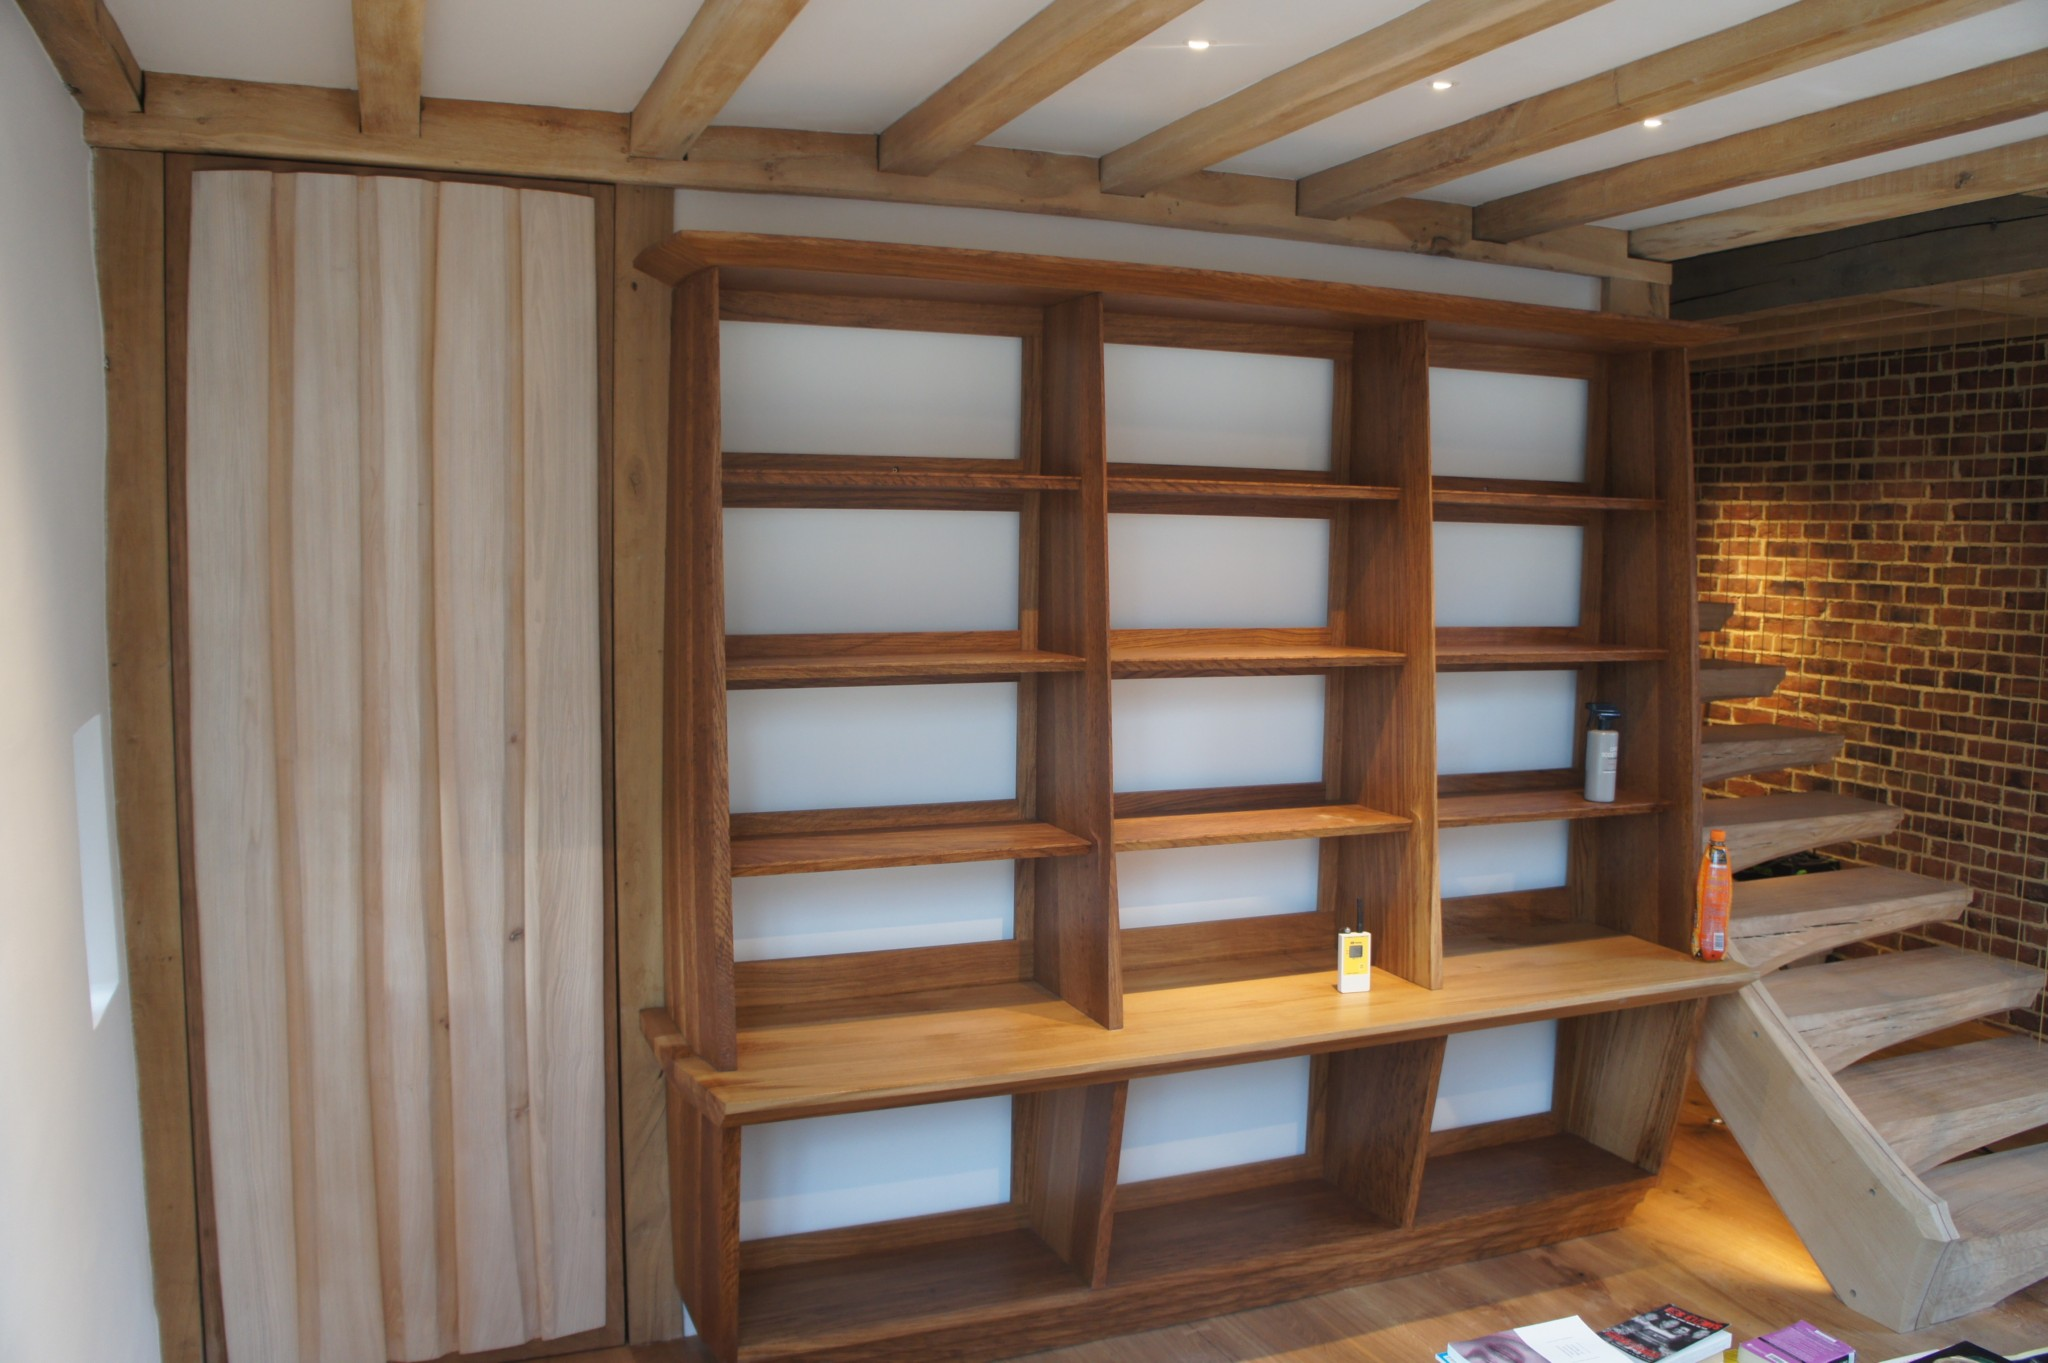 The Bookcase installed in its original position, now after lowering the floor height and remodelling the room by S A Spooner